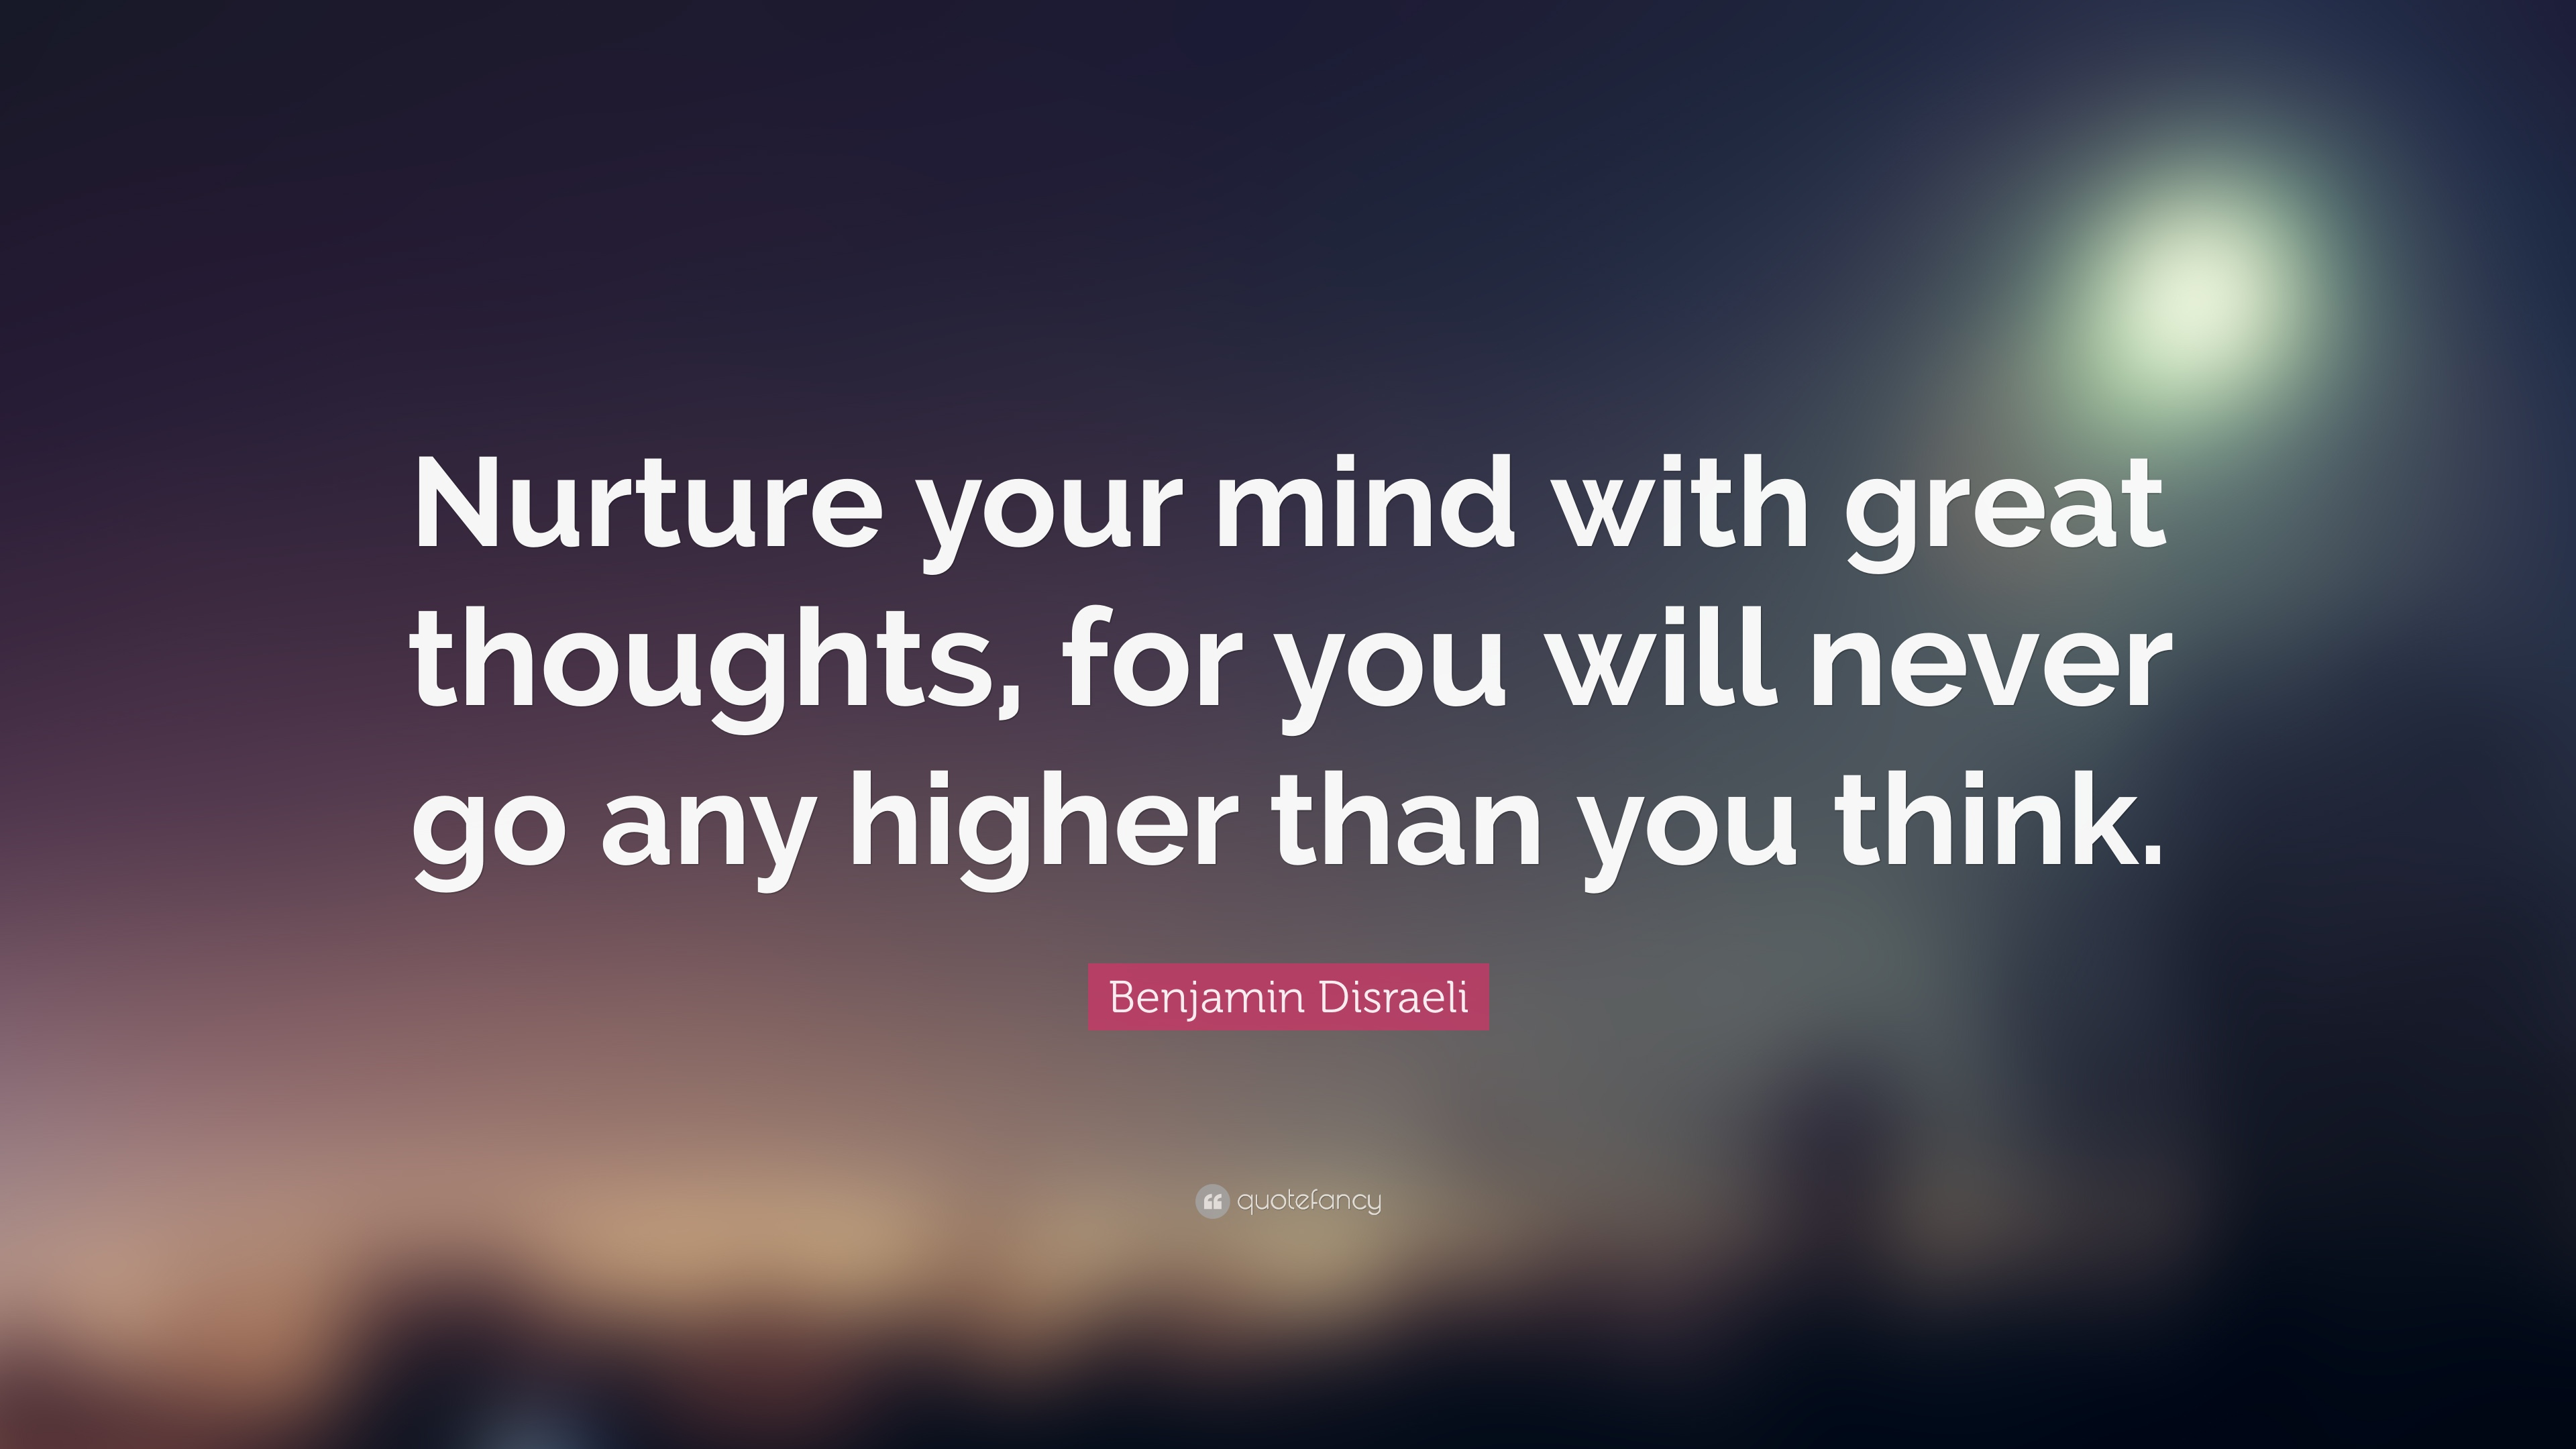 Benjamin Disraeli Quote Nurture Your Mind With Great Thoughts For You Will Never